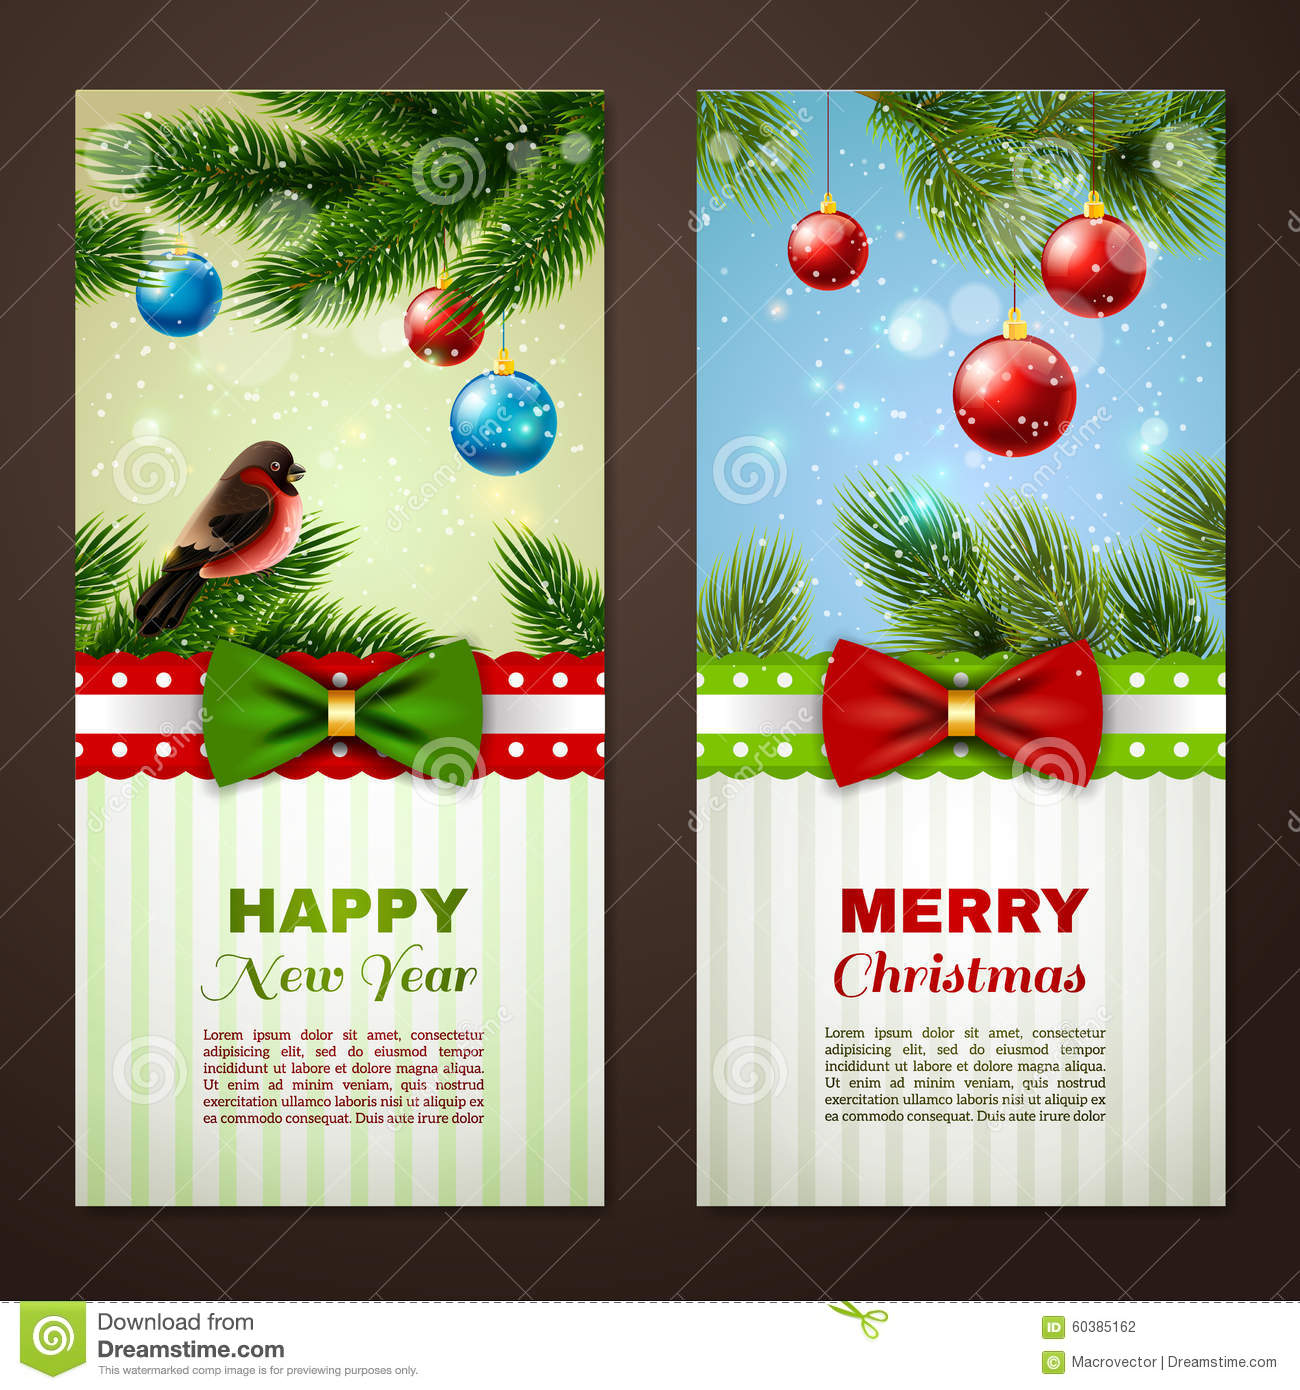 Christmas cards 2 banners set stock vector illustration of christmas cards 2 banners set m4hsunfo